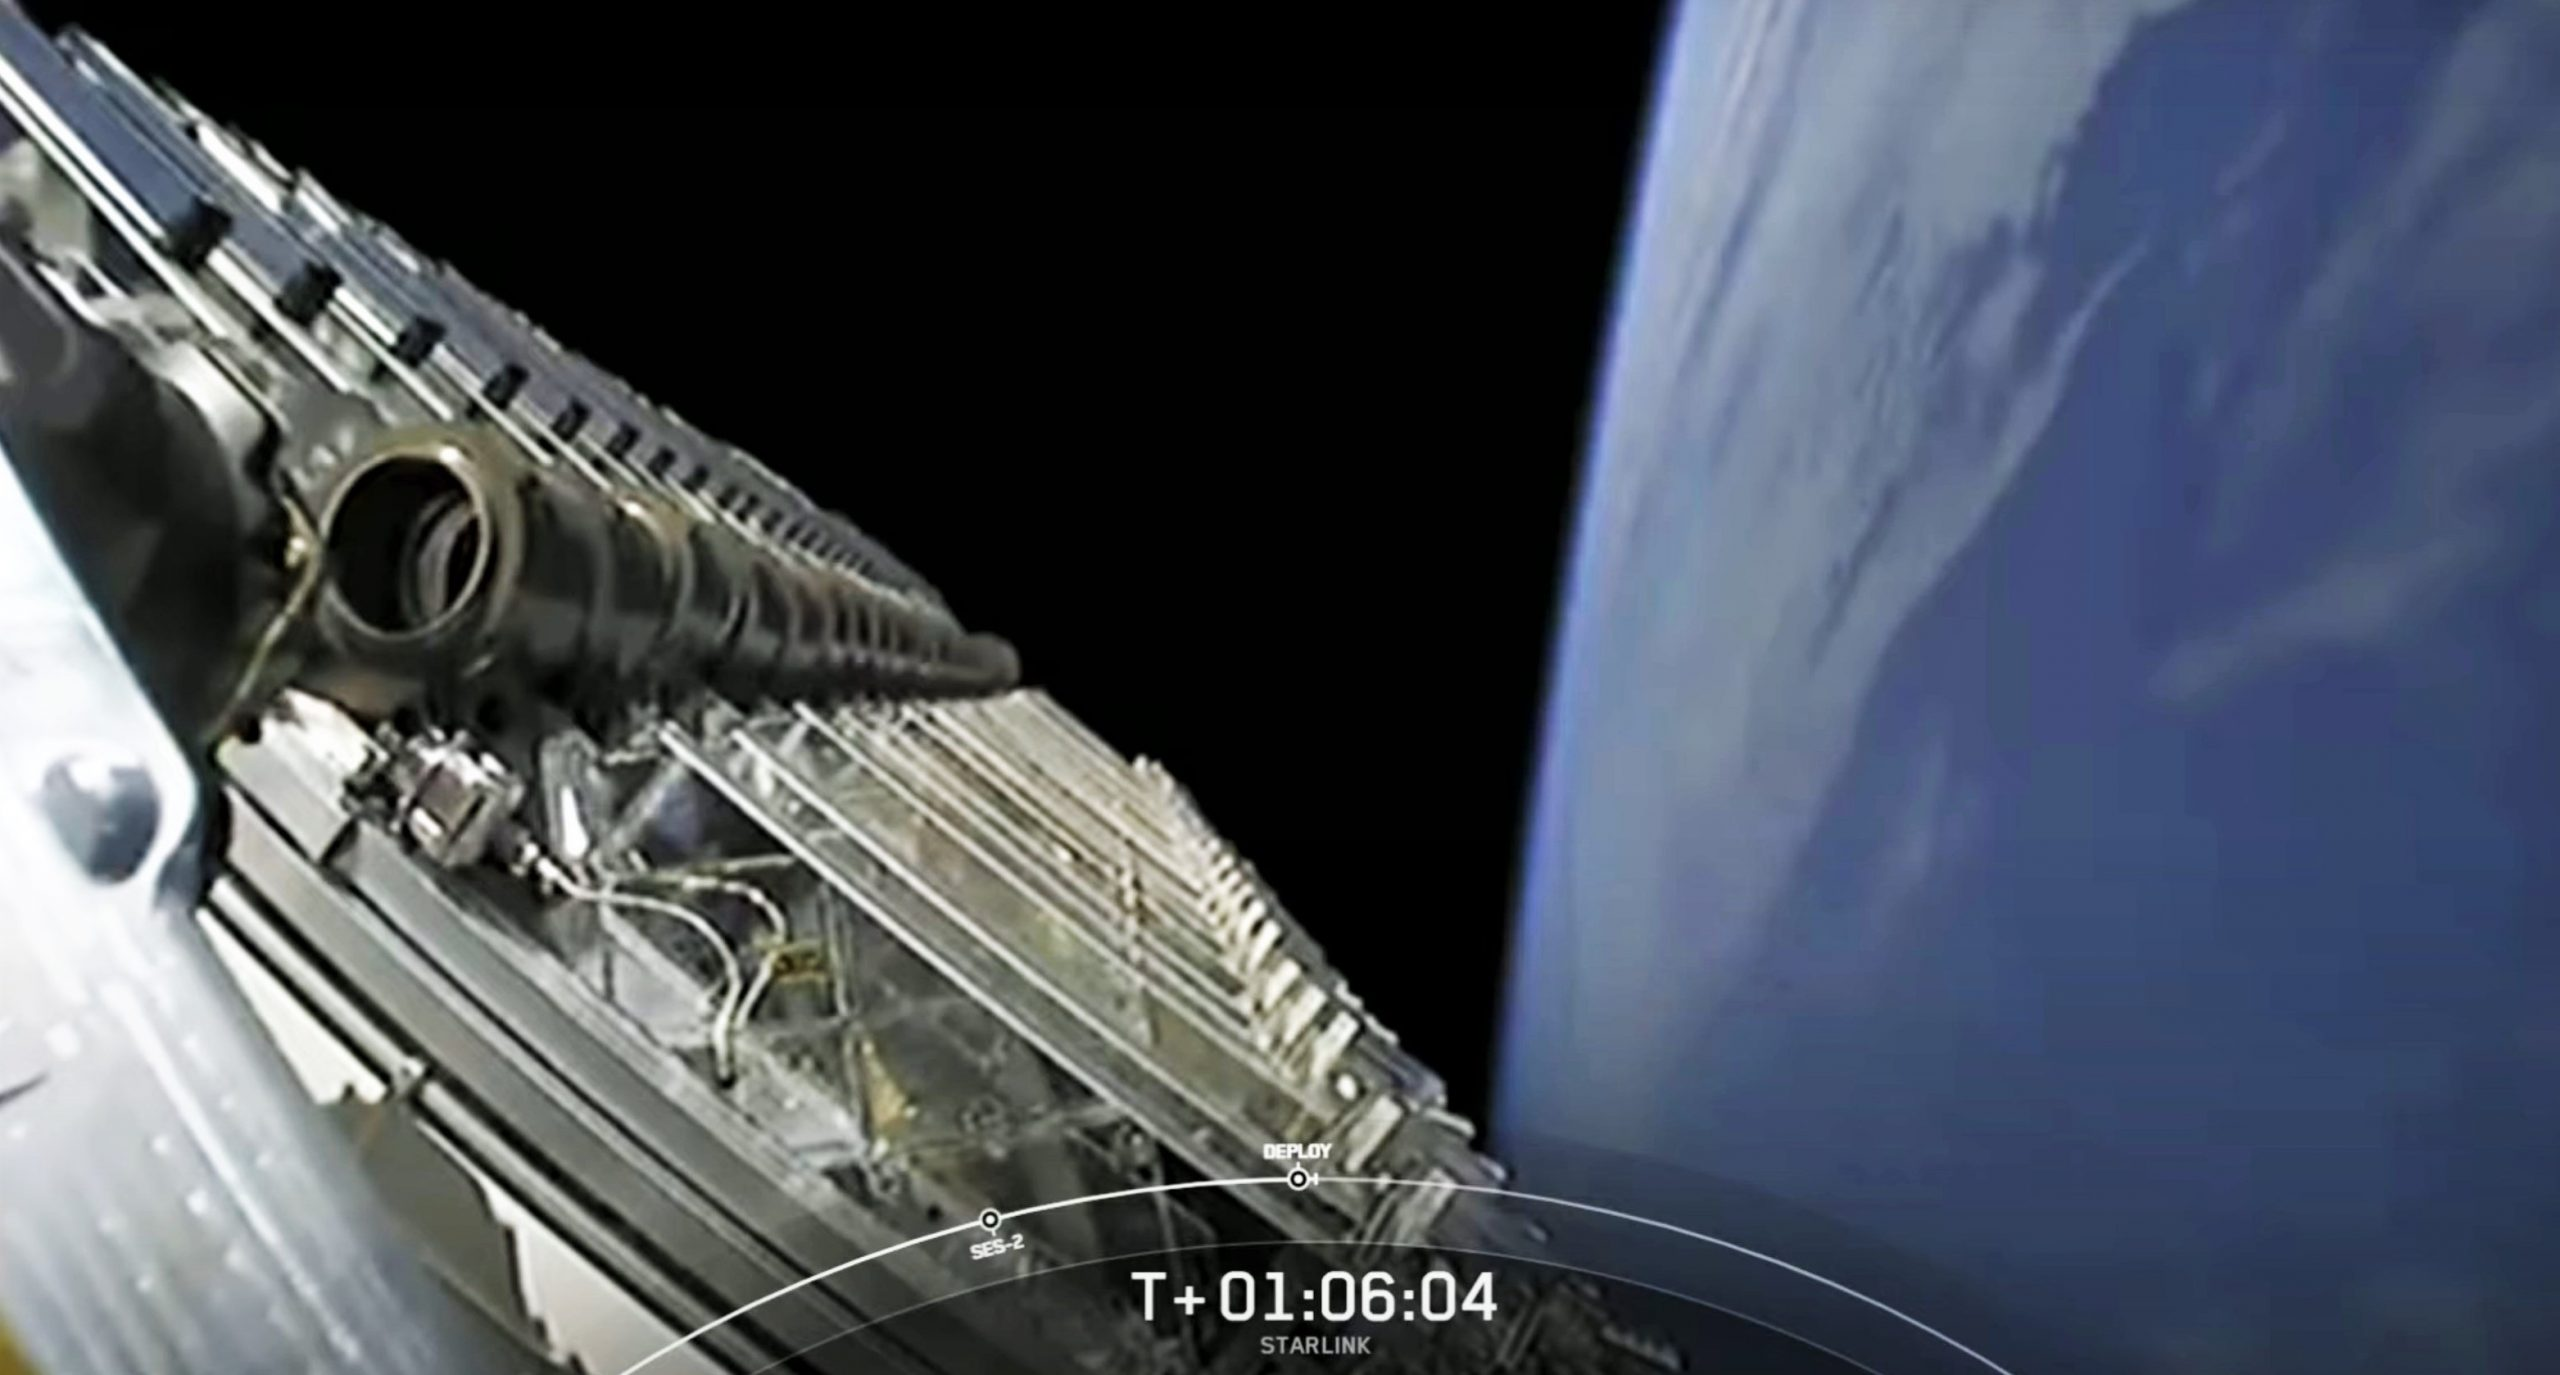 Starlink-18 Falcon 9 B1060 020421 (SpaceX) webcast deploy 3